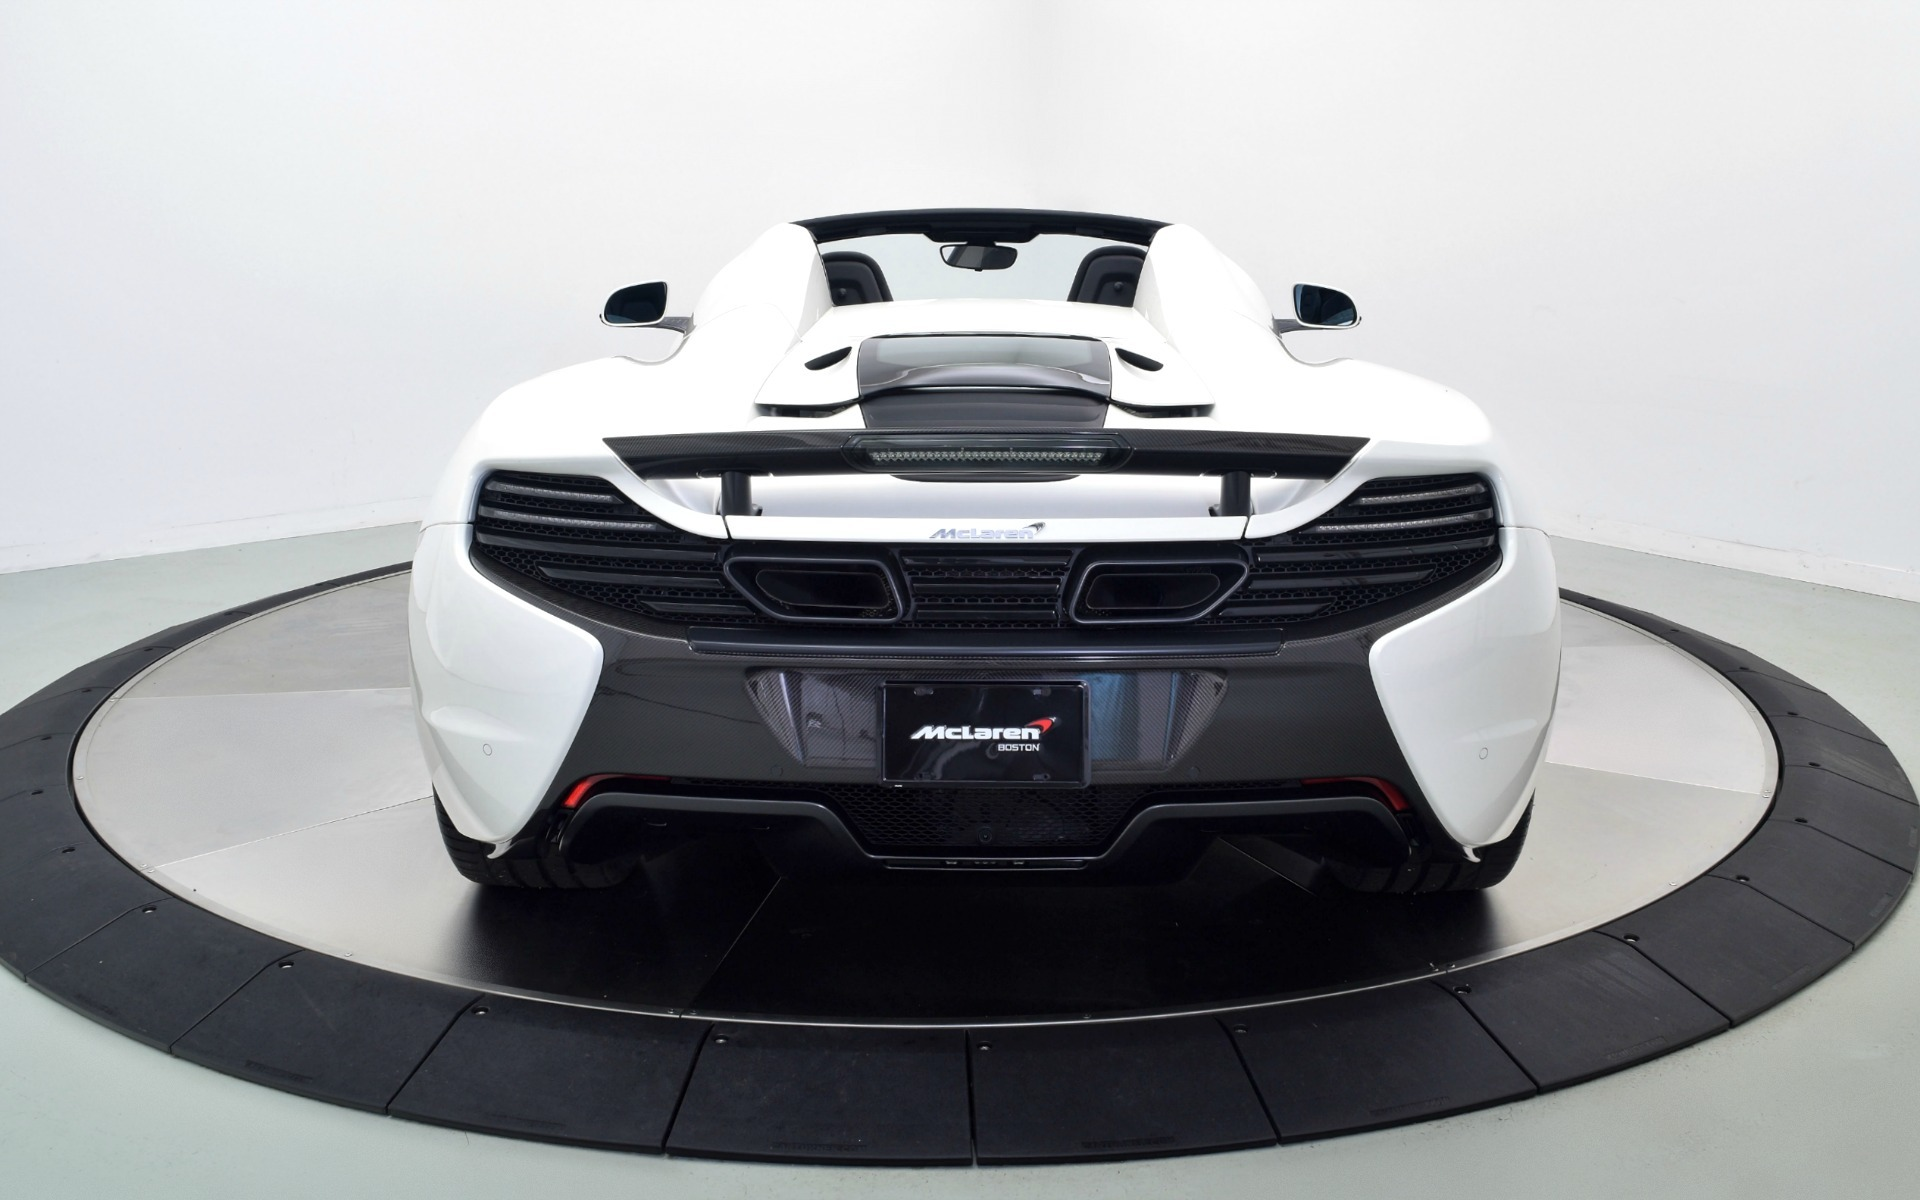 2016 mclaren 650s spider for sale in norwell ma 006186 mclaren boston. Black Bedroom Furniture Sets. Home Design Ideas